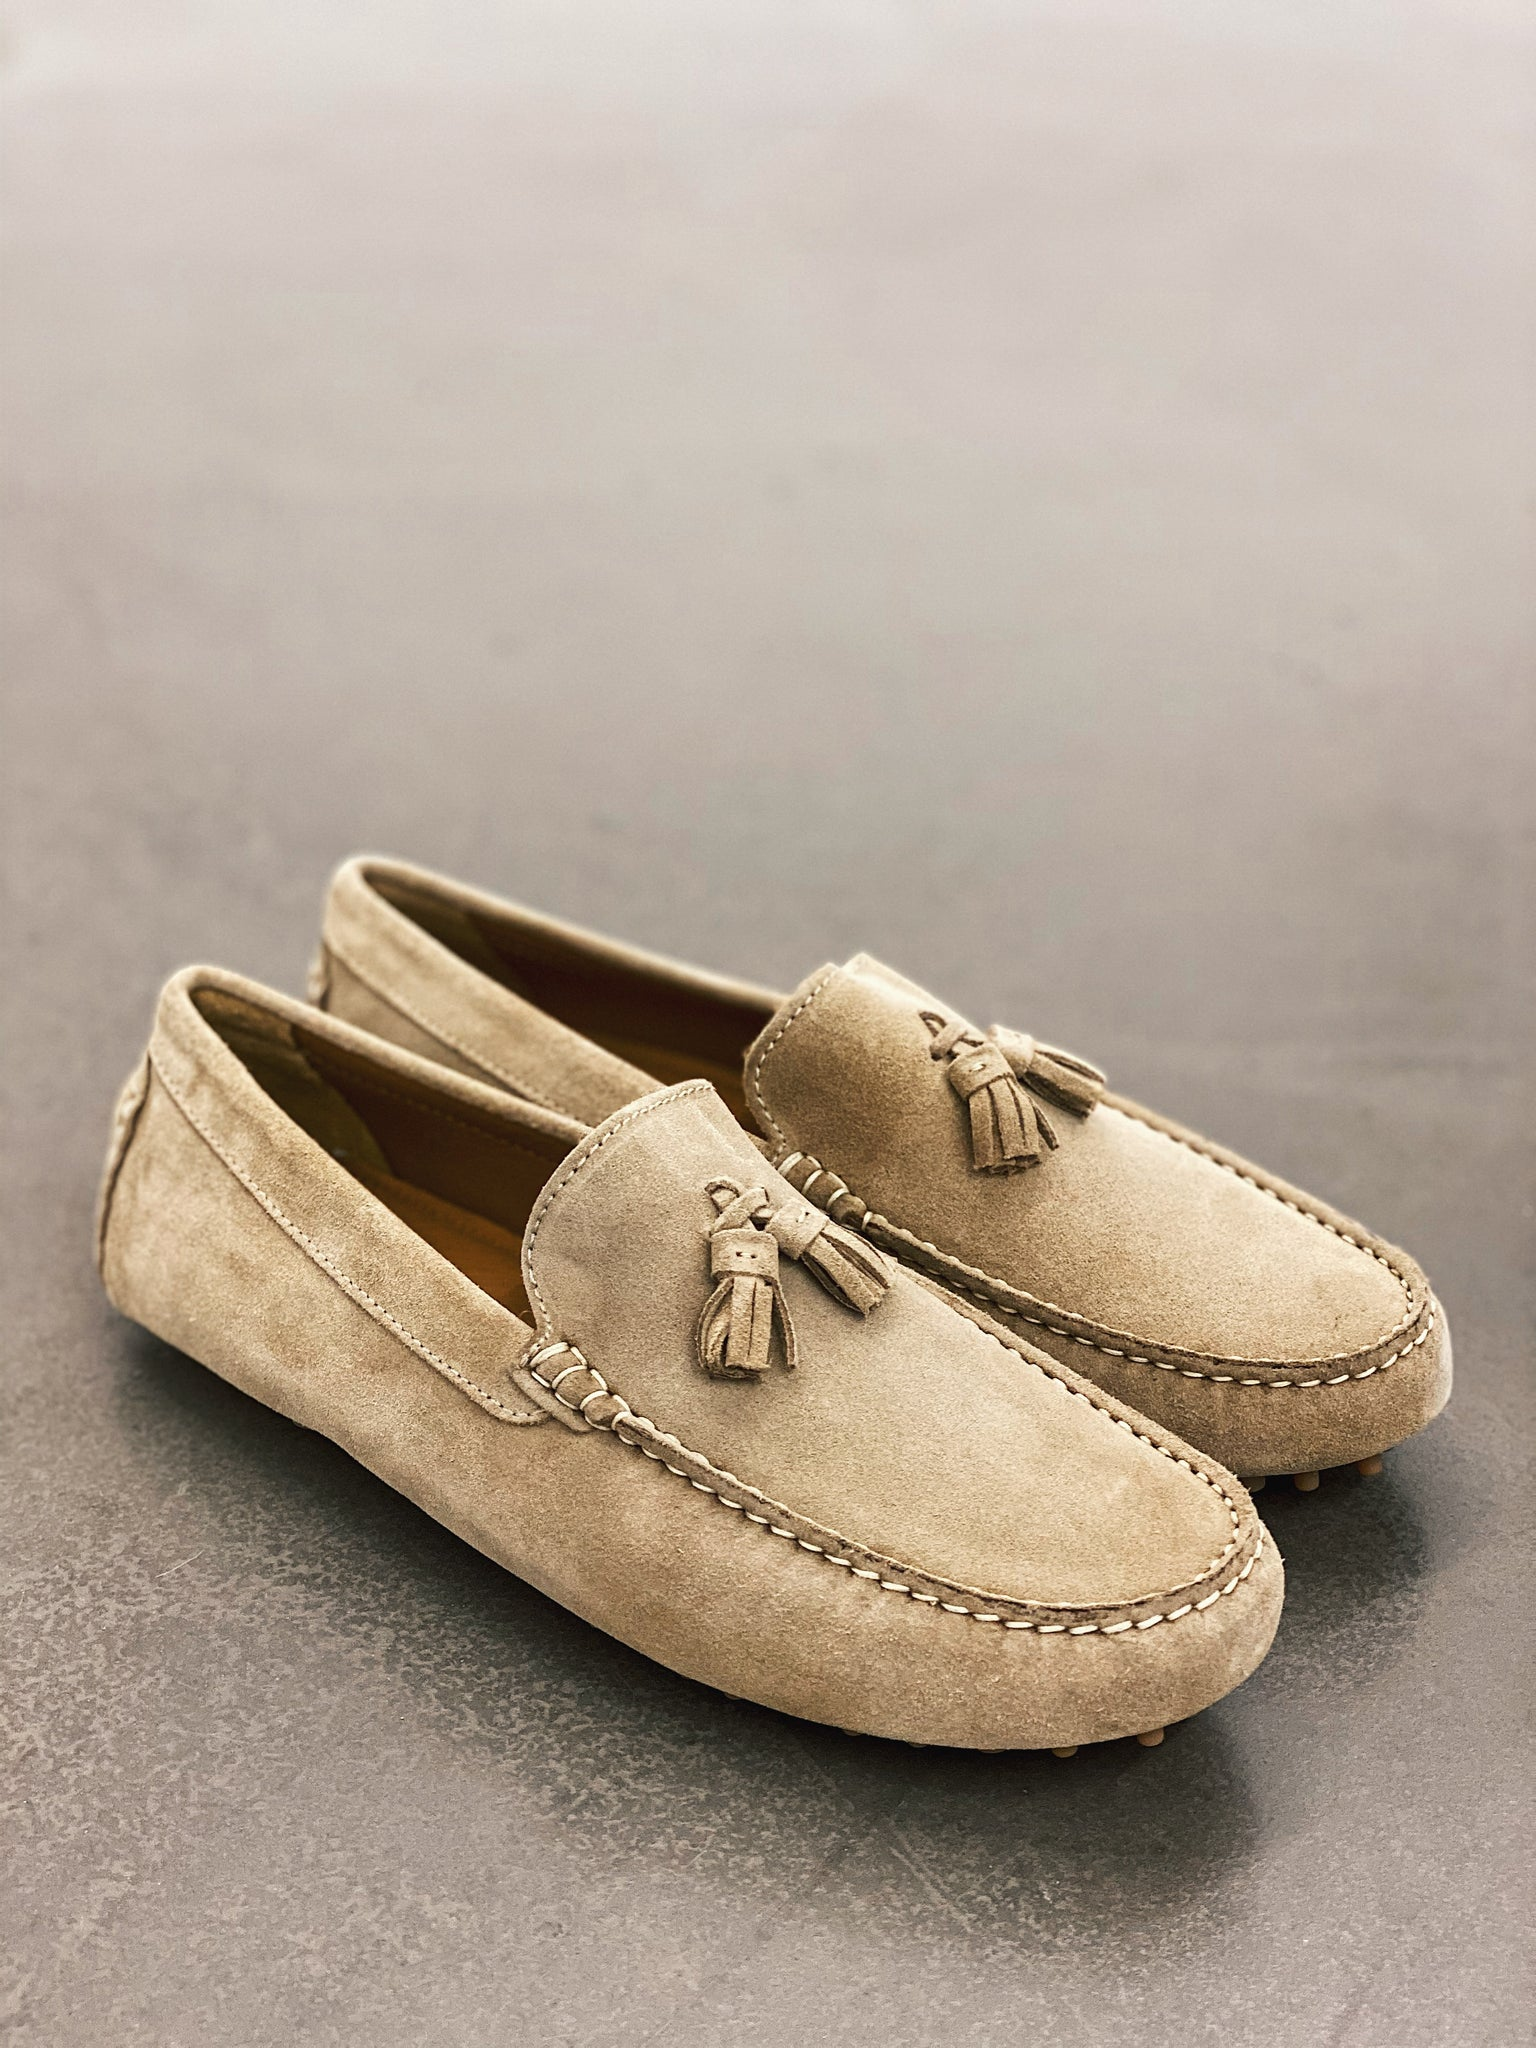 Hugs & Co. taupe suede loafers